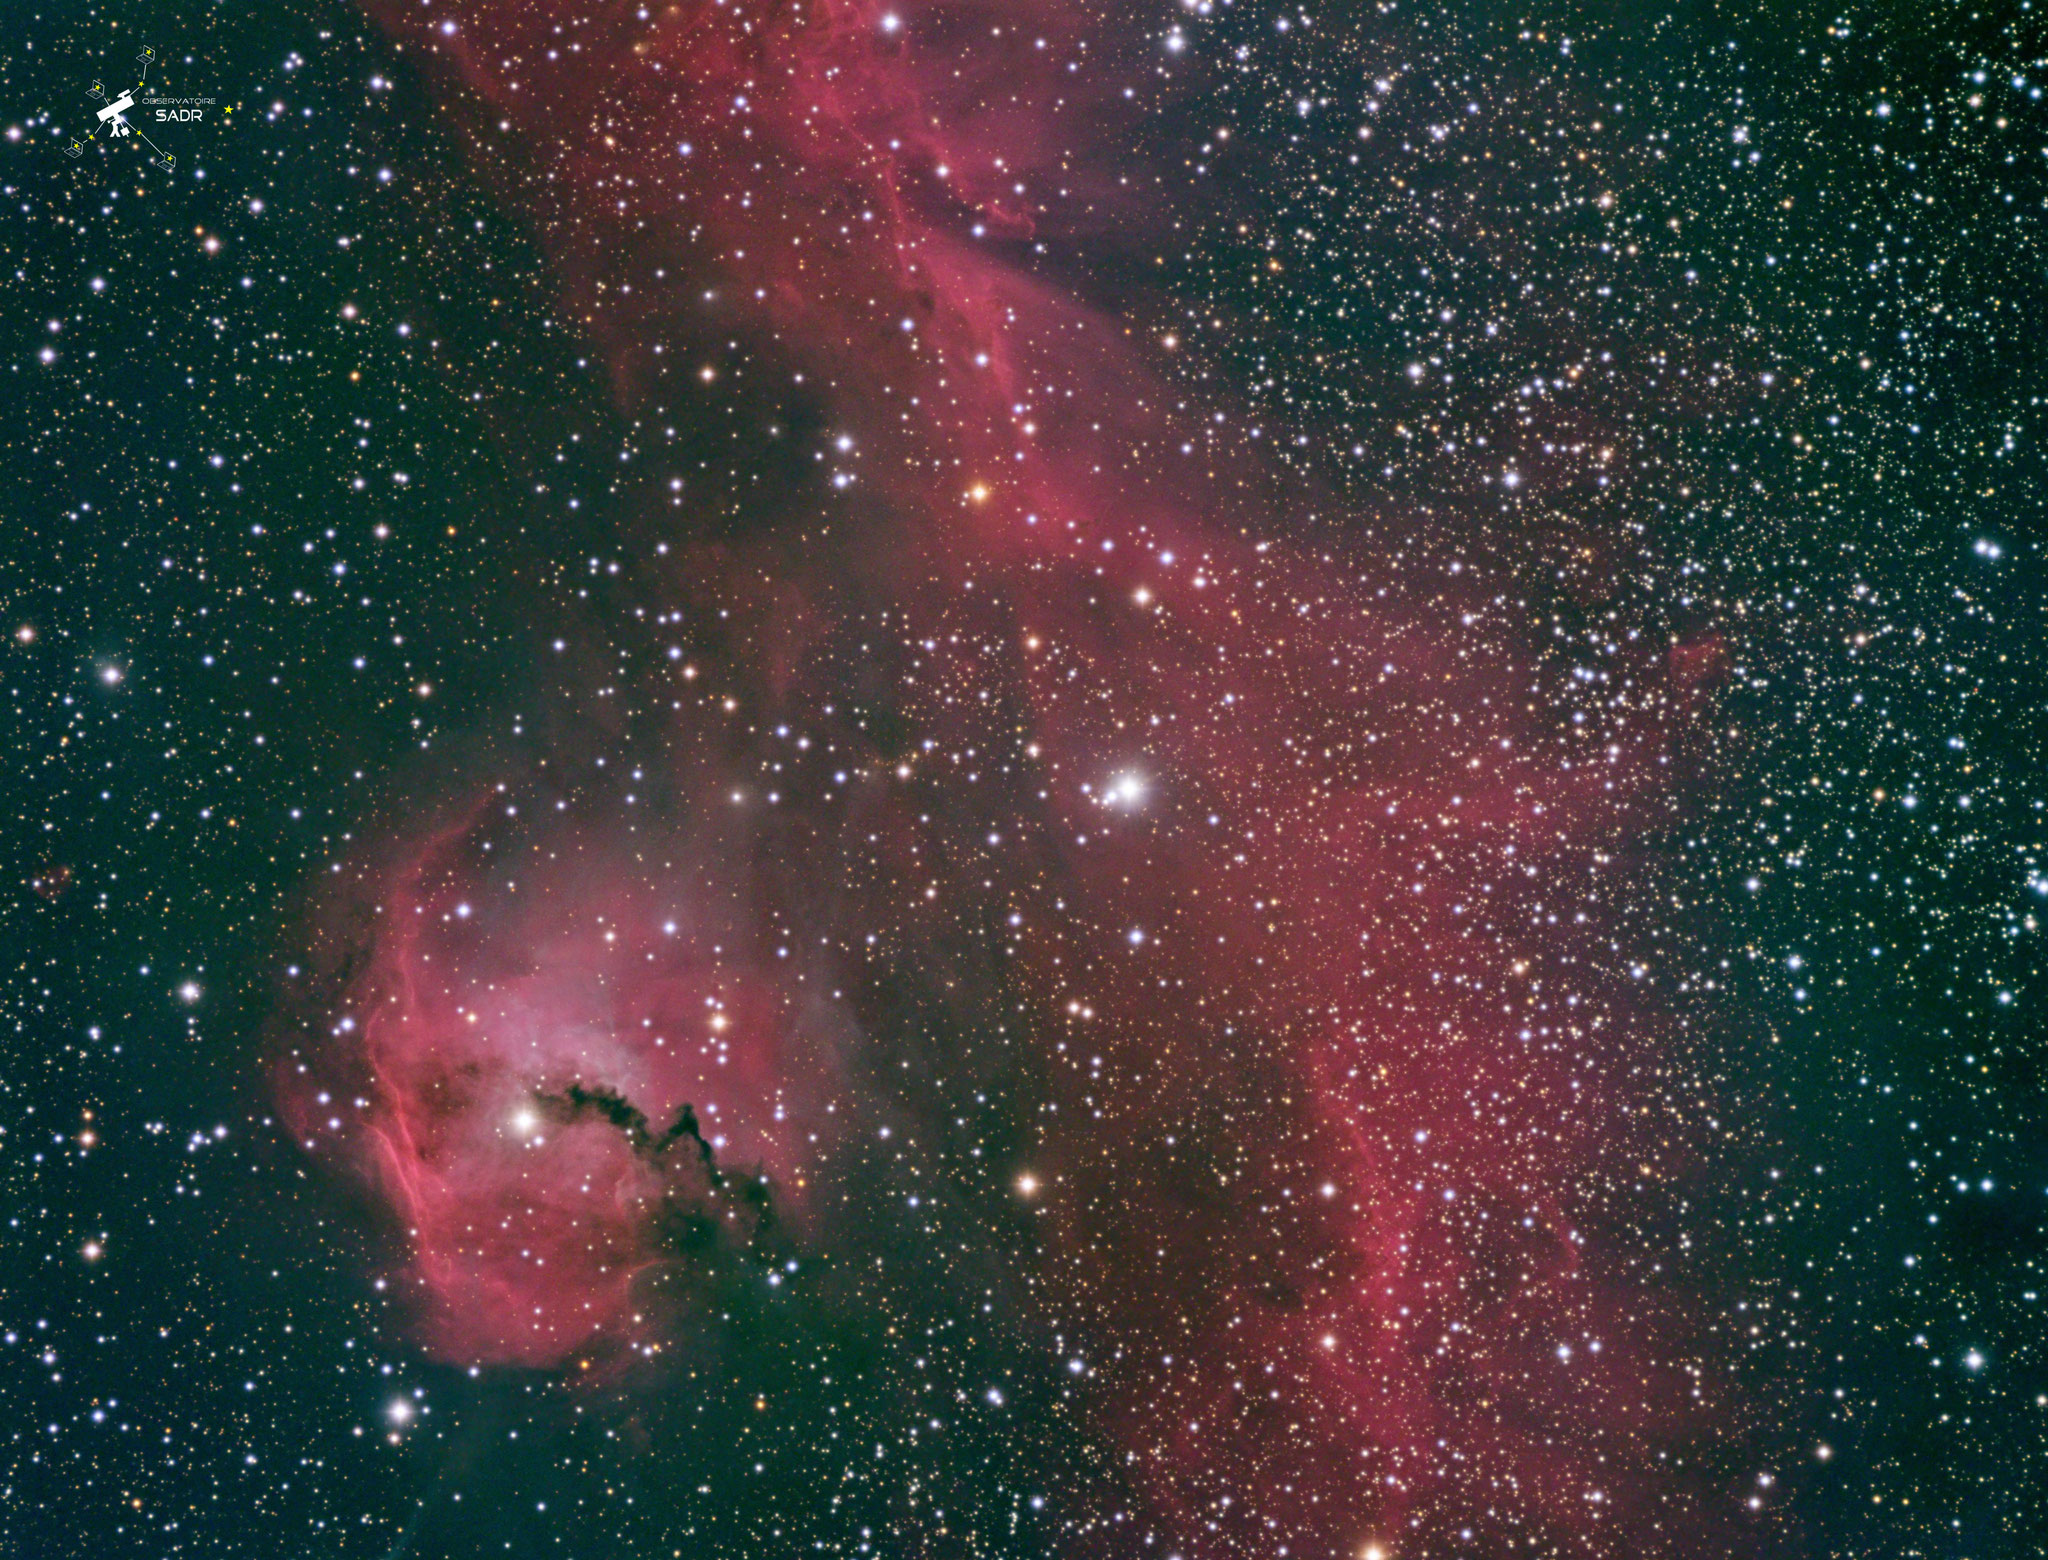 IC2177, LRVB, poses individuelles ) 5 min, total de 6h 50, lunette 127mm, team SLDF, Sadr Chili